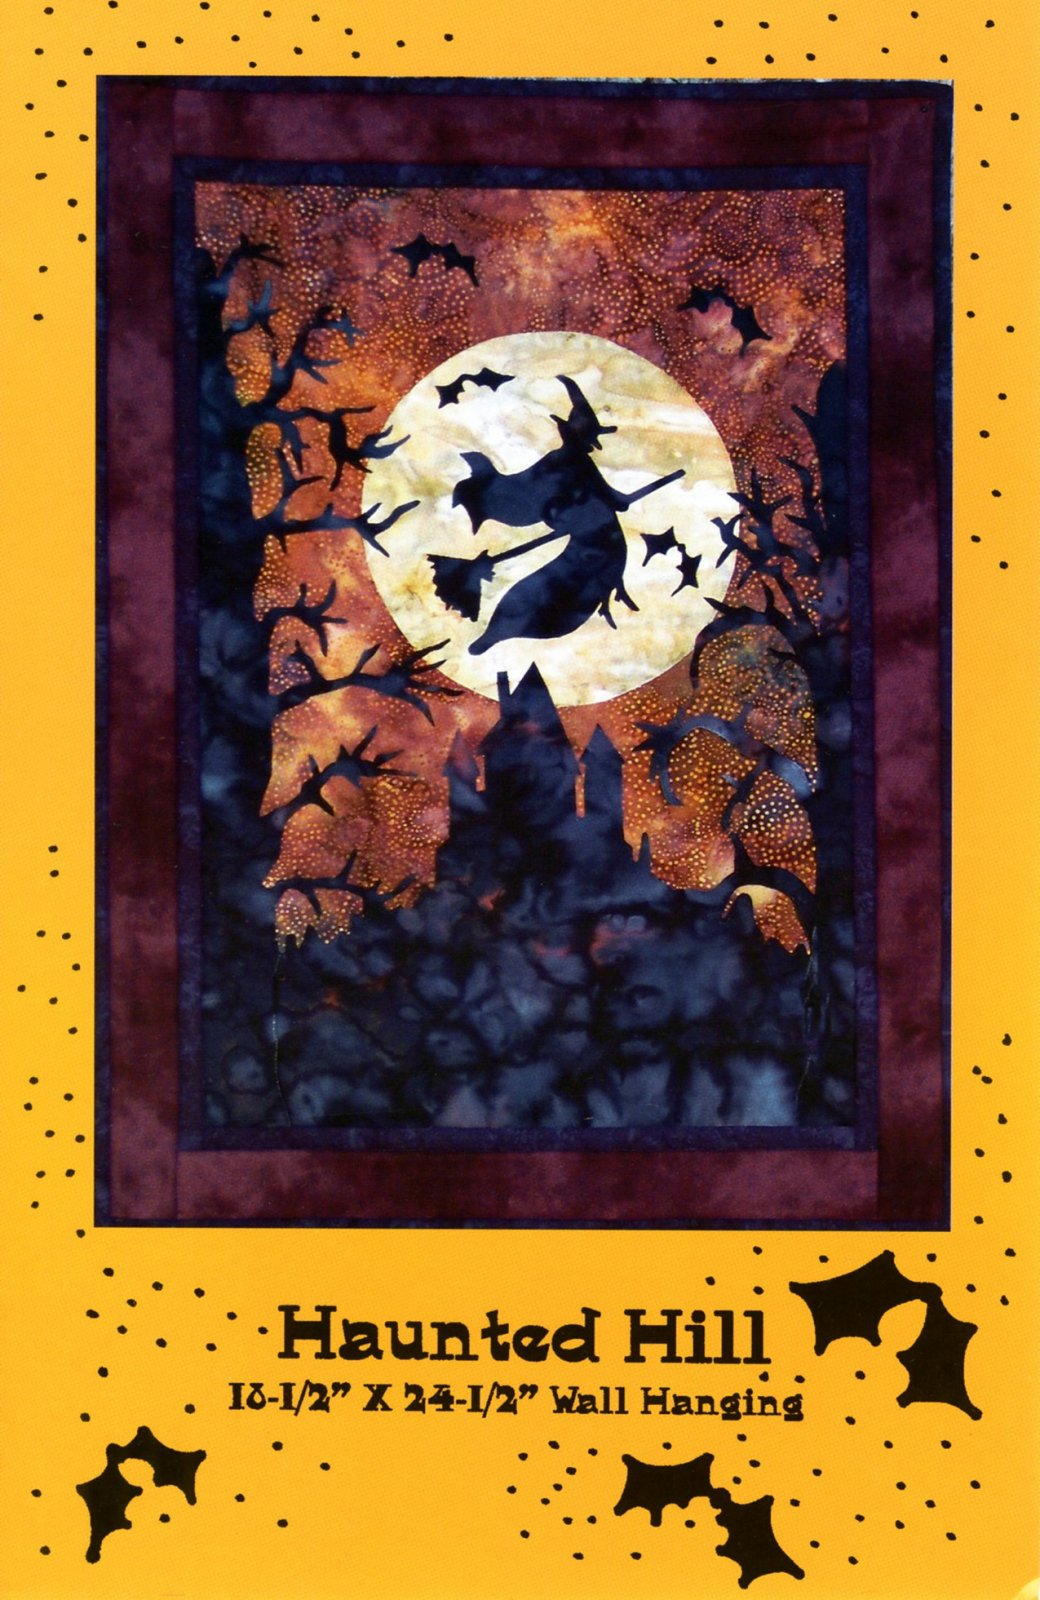 Haunted Hill Wall Hanging